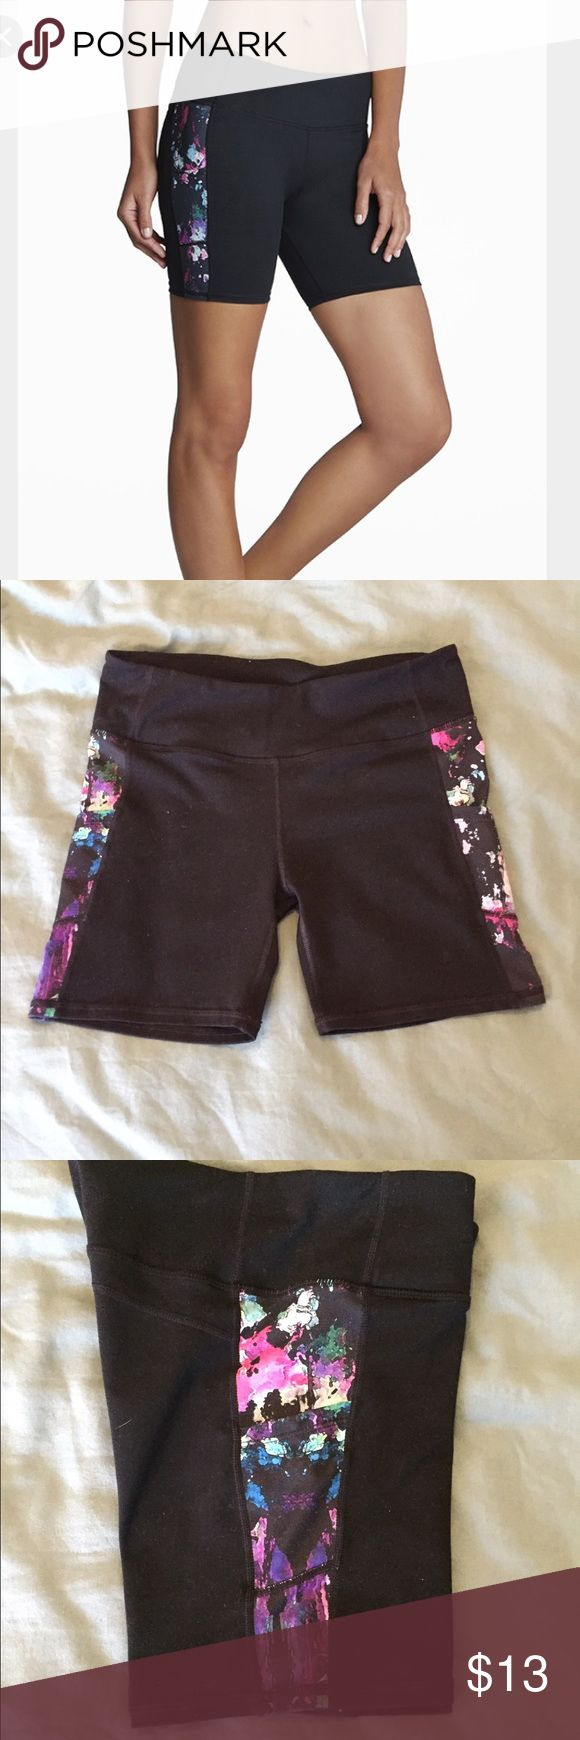 Fabletics Suki Fitted Shorts W/ Thigh Pockets XXS Fabletics Suki Shorts XXS in Black/ Pink Lava. Pockets on both thighs for phone, cards, etc; small waistband pocket. Triangle gusset. VGUC: No pilling, rips, tears. Super cute! Fab XXS fit like Lululemon 4. Similar to Lulu Speed Track Shorts. (Tagged Lulu for exposure and comparison) Lower on Ⓜ️ lululemon athletica Shorts